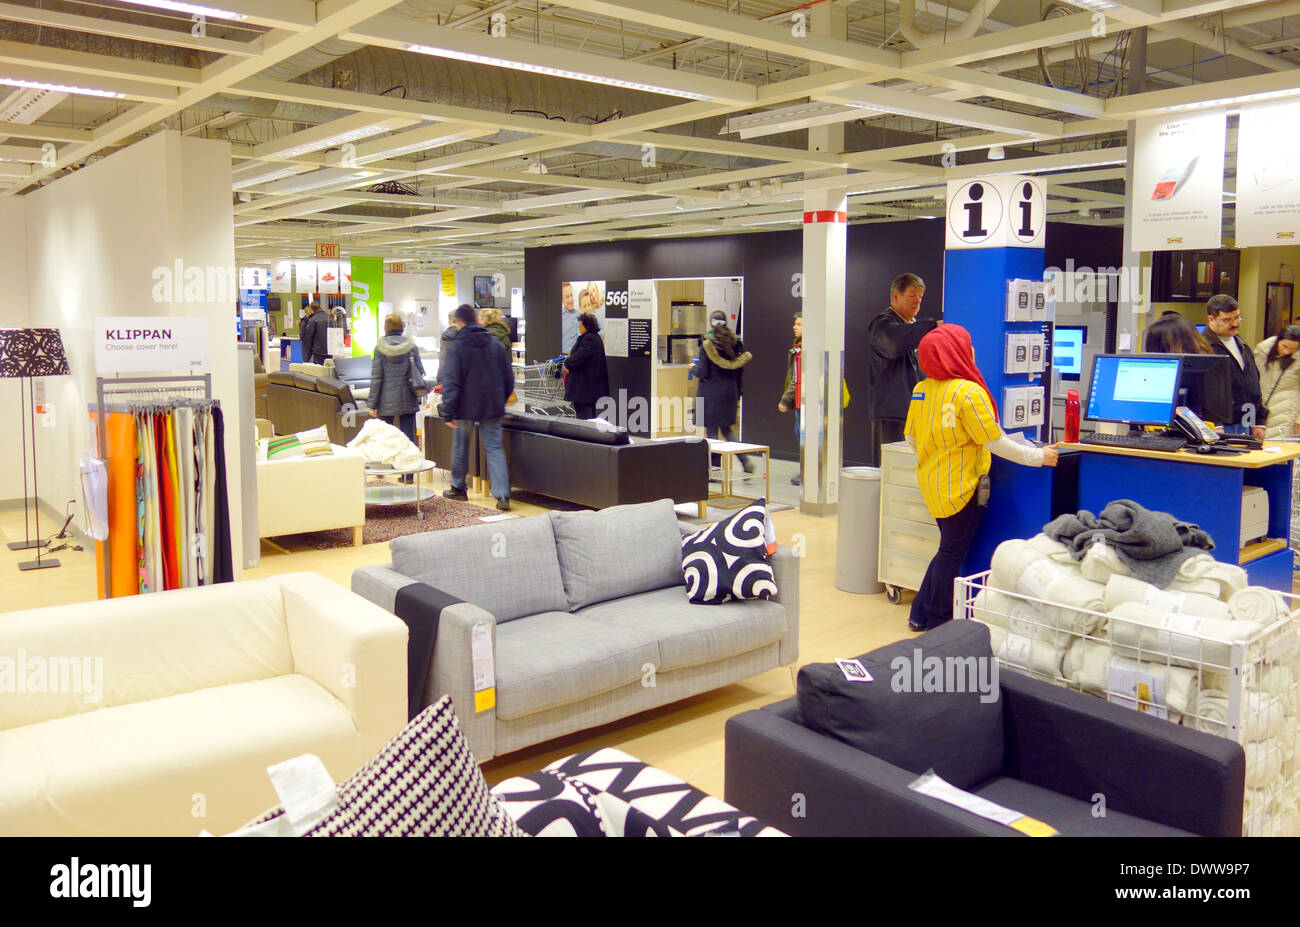 Furniture Selection At An Ikea Store In Toronto, Canada